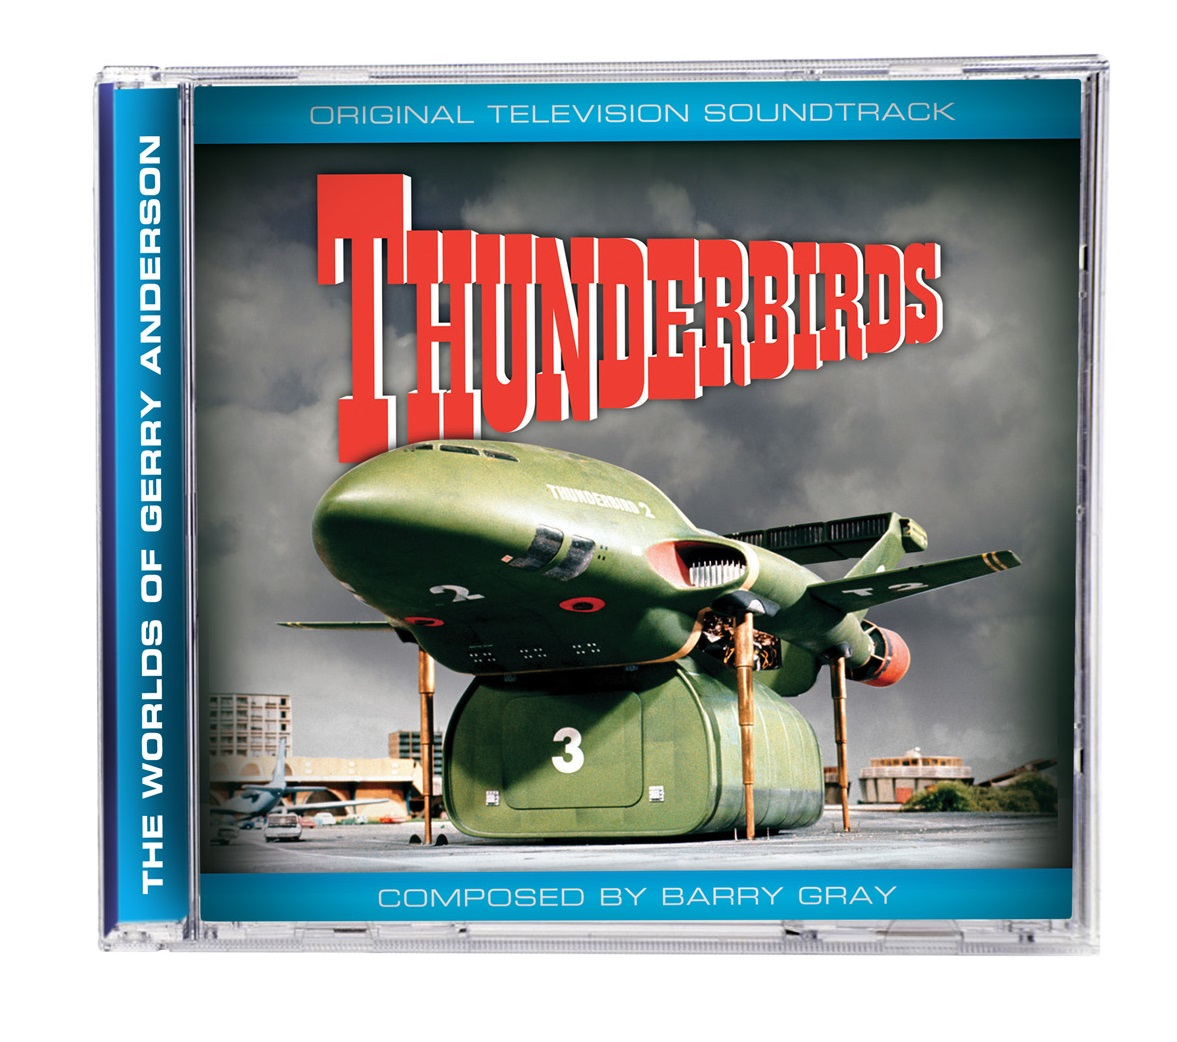 Thunderbird soundtrack CD